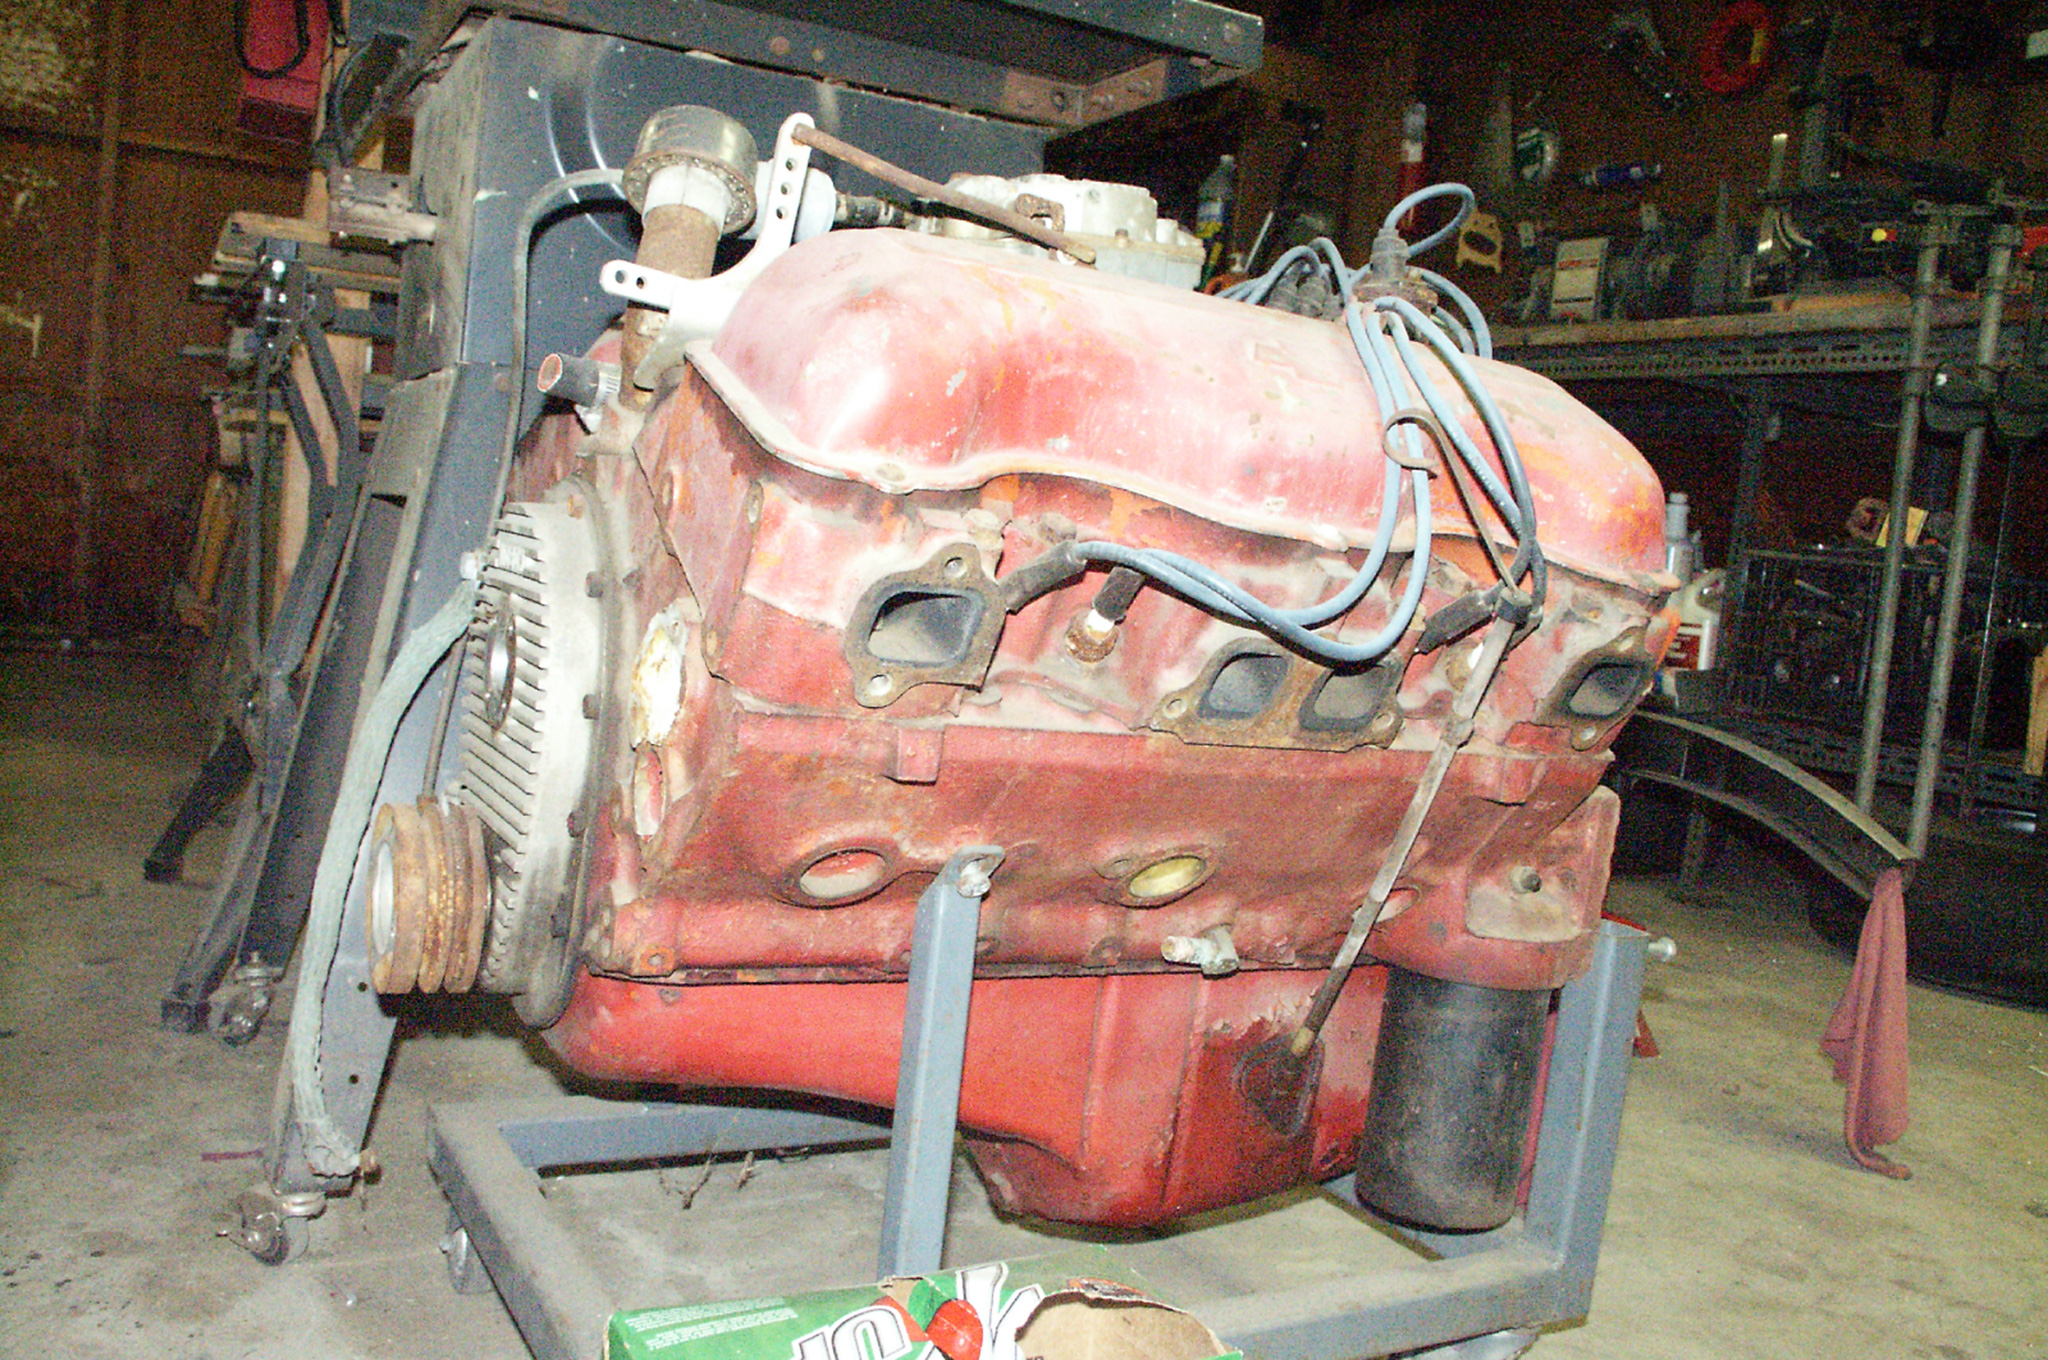 The 348-inch Chevy motor, given to Colby by Steve Lenain, was originally in a '58 Impala and then did duty in a ski boat in the 1960s. Note the engine still has its four-barrel carb and Nicson timing cover.